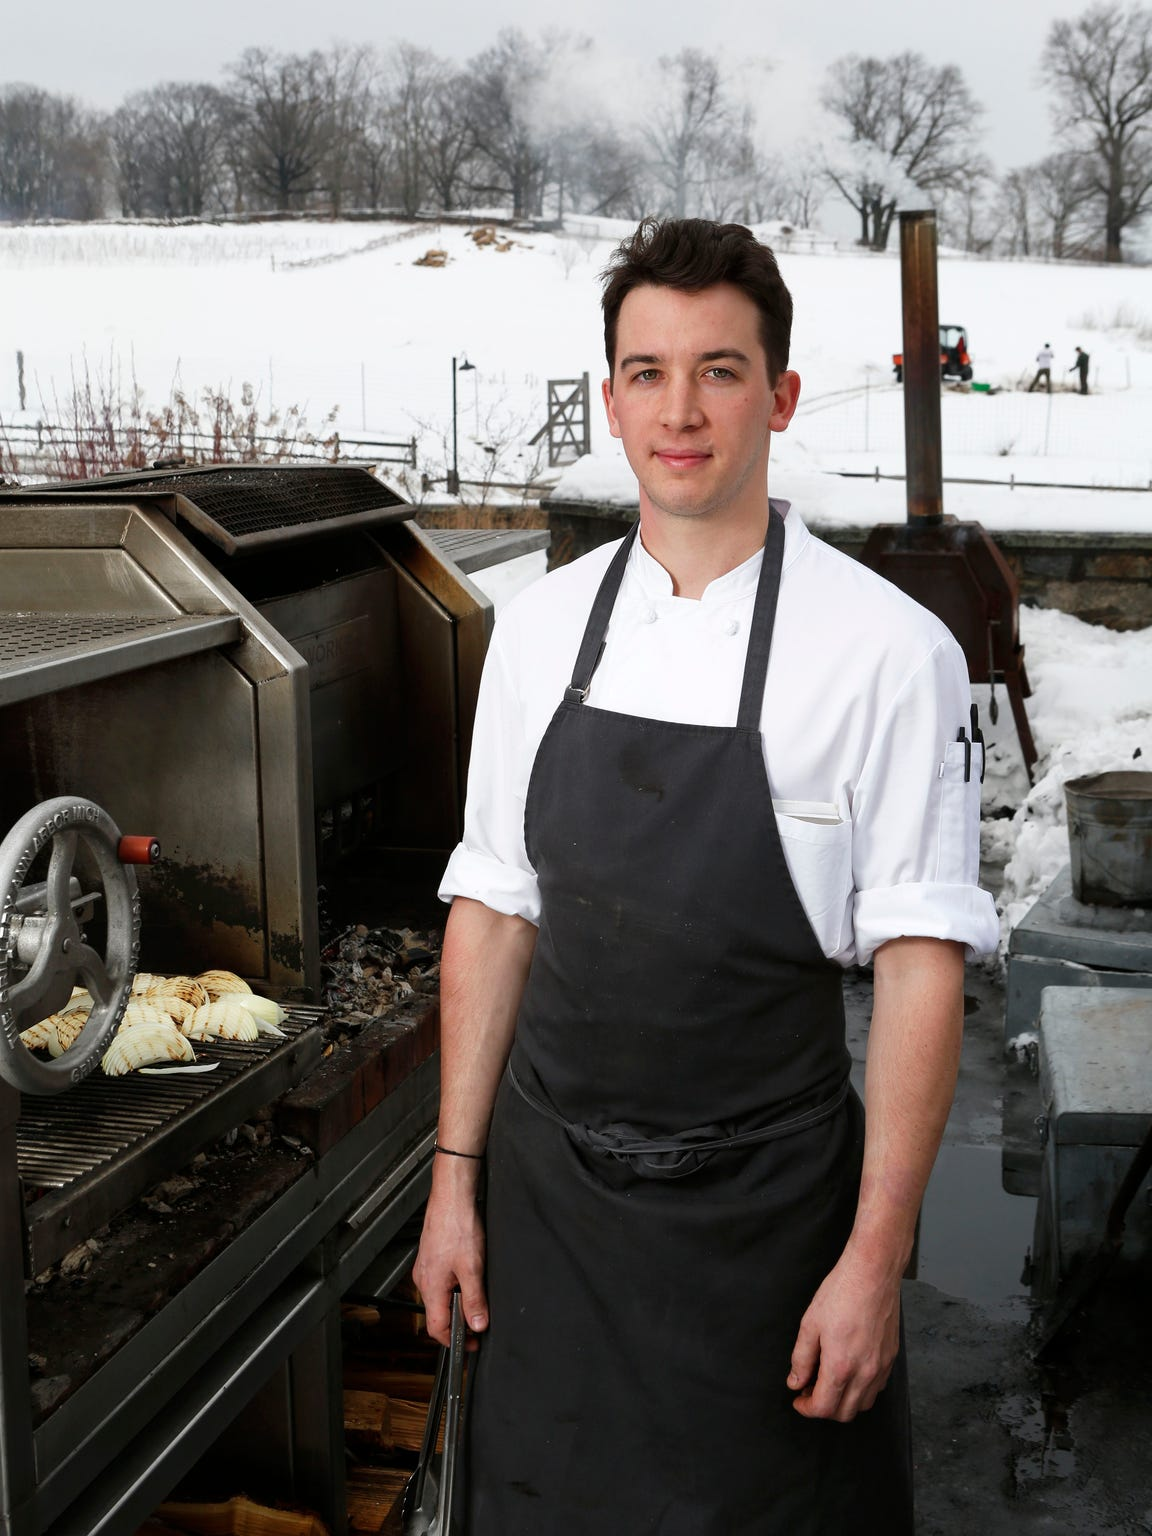 Bastien Guillochon, a stage chef, is getting ready